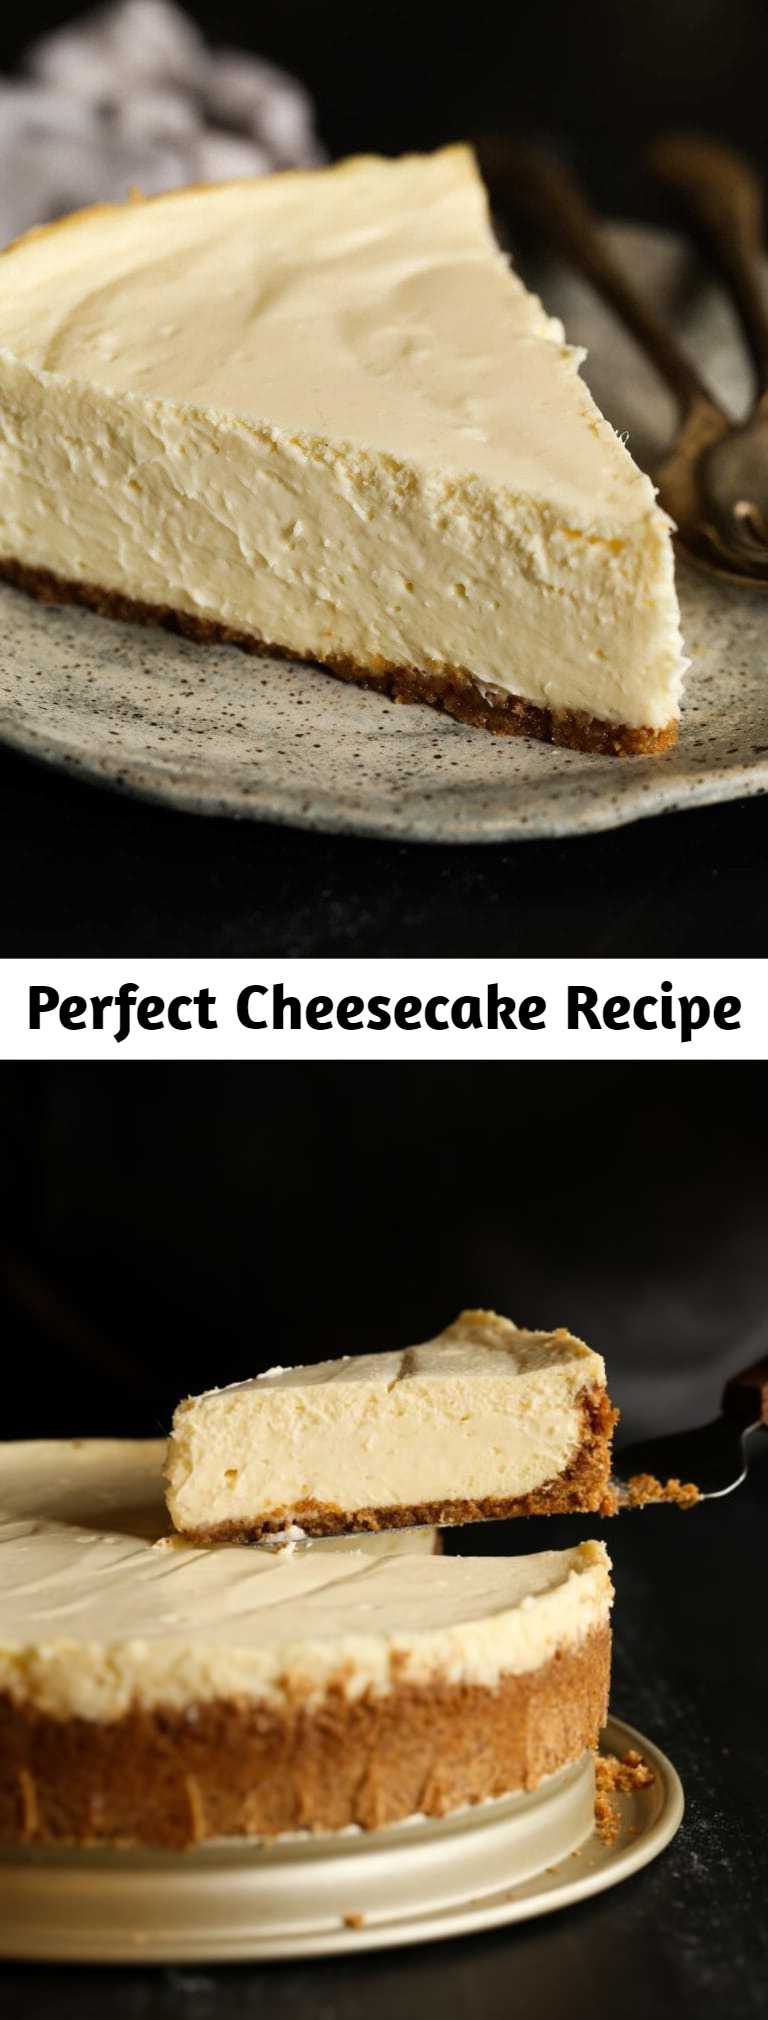 Perfect Cheesecake Recipe - This Classic Cheesecake Recipe makes perfect cheesecake every time! It doesn't get much better than creamy, smooth cheesecake baked in a homemade graham cracker crust.